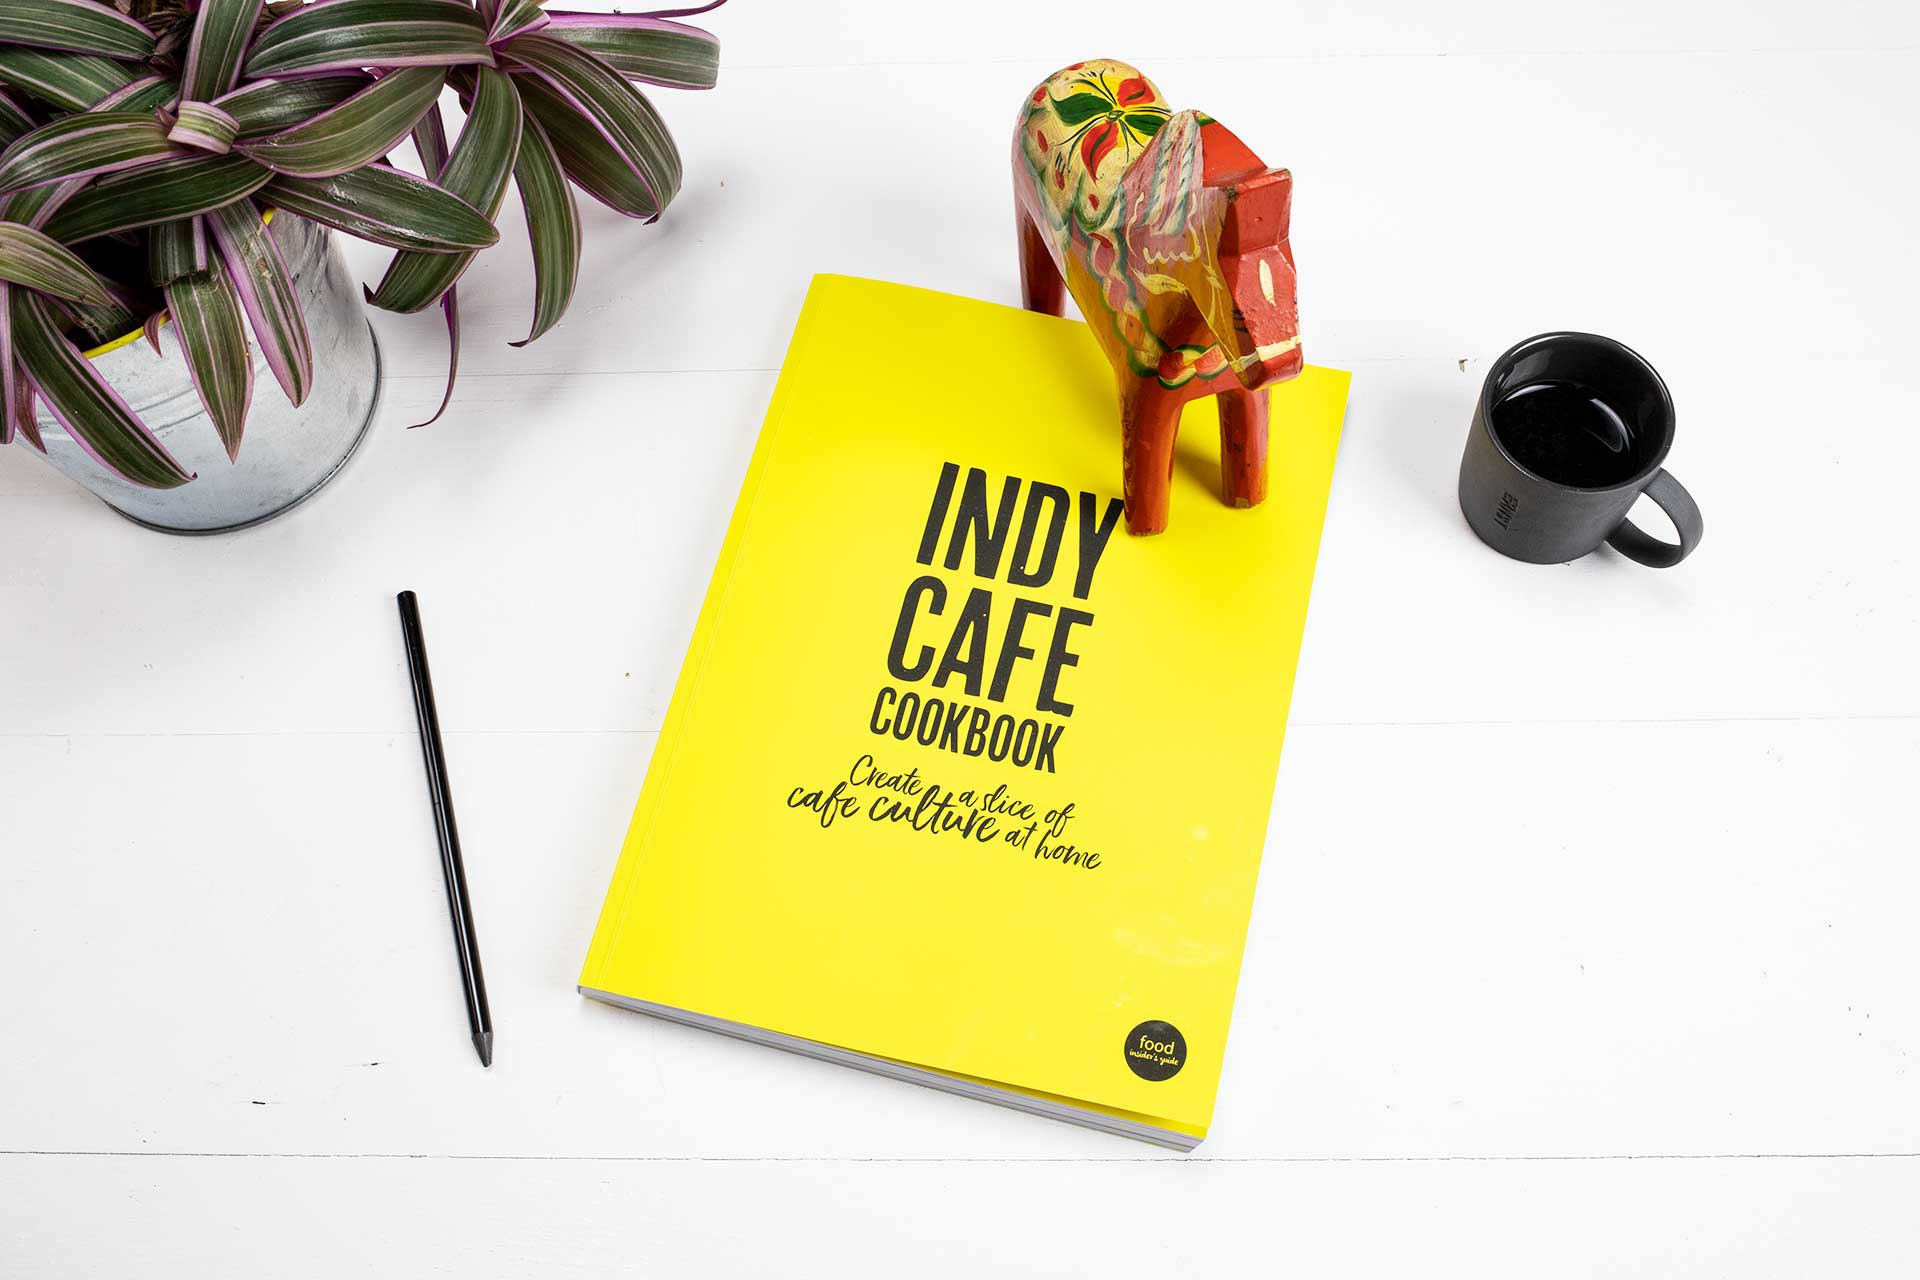 indy cafe cookbook thank you